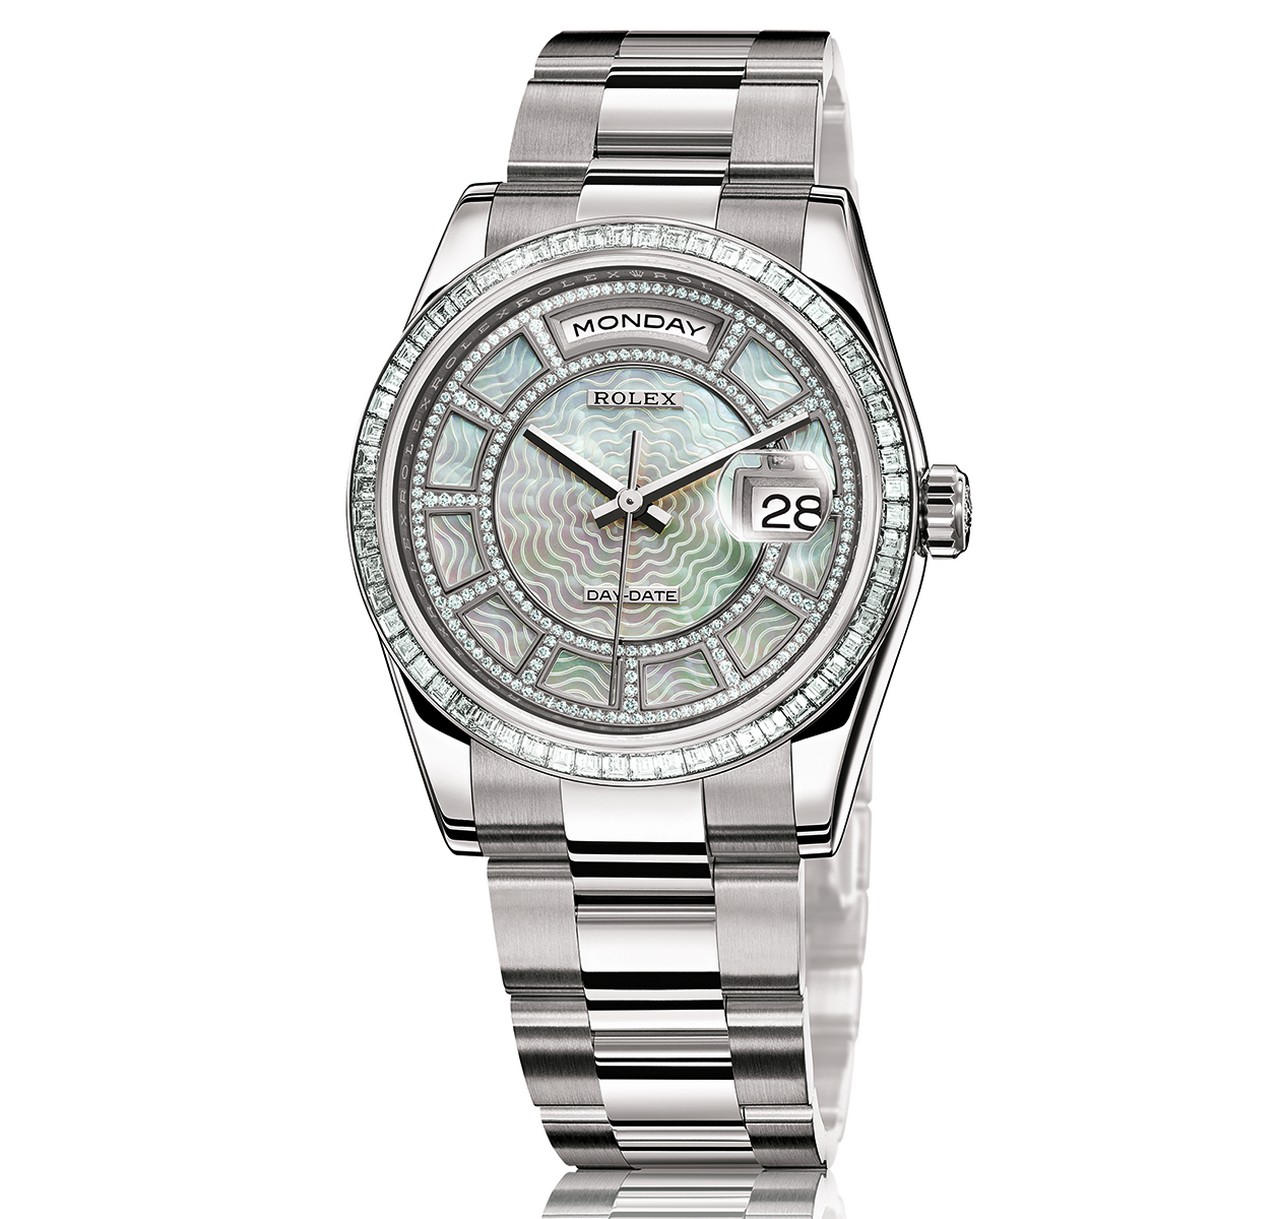 baselworld-2013-oyster-perpetual-day-date-sertie_0-100_10